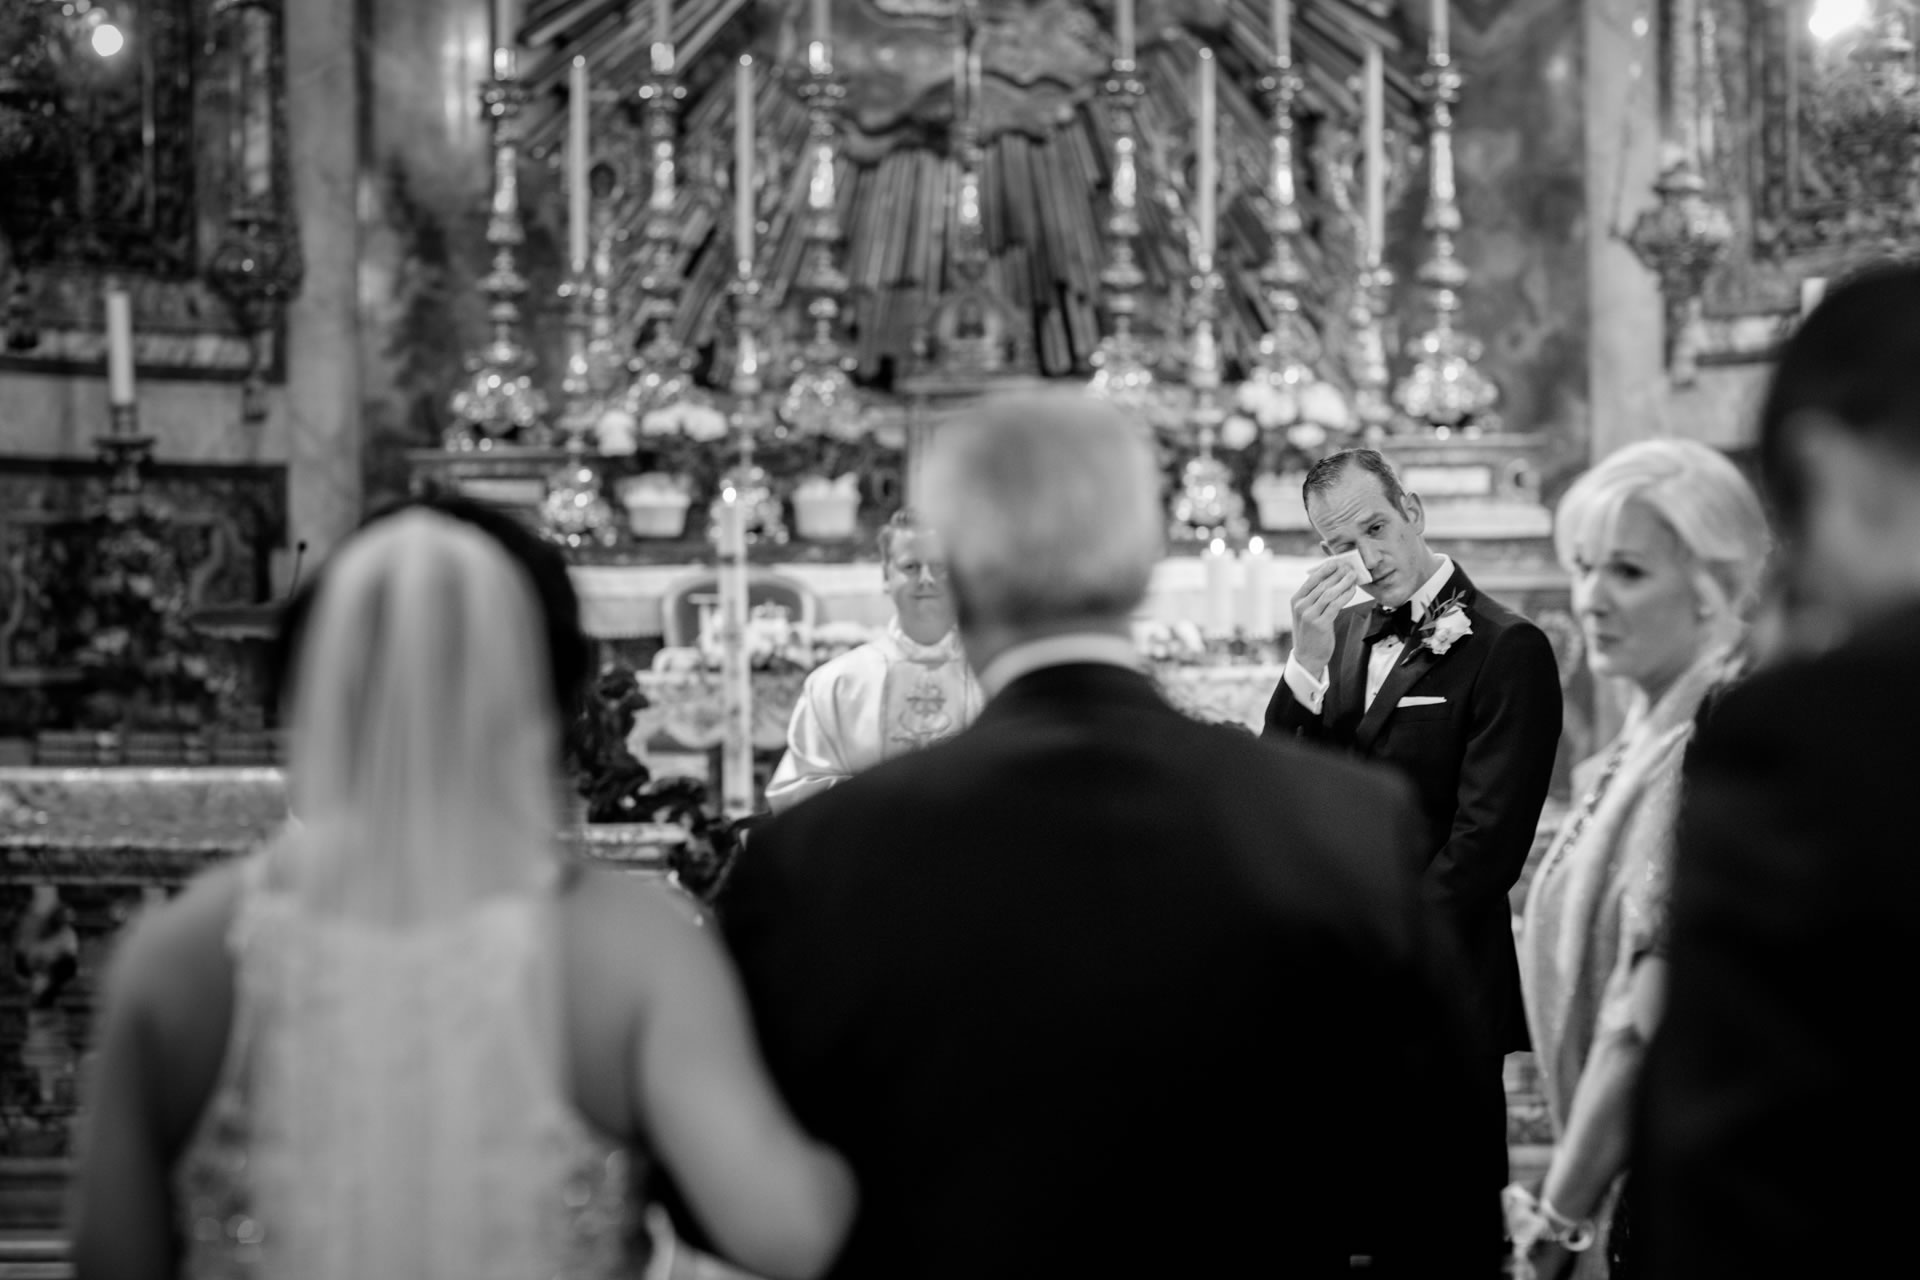 - 17 :: A breath-taking wedding in Rome, the eternal city :: Luxury wedding photography - 16 ::  - 17